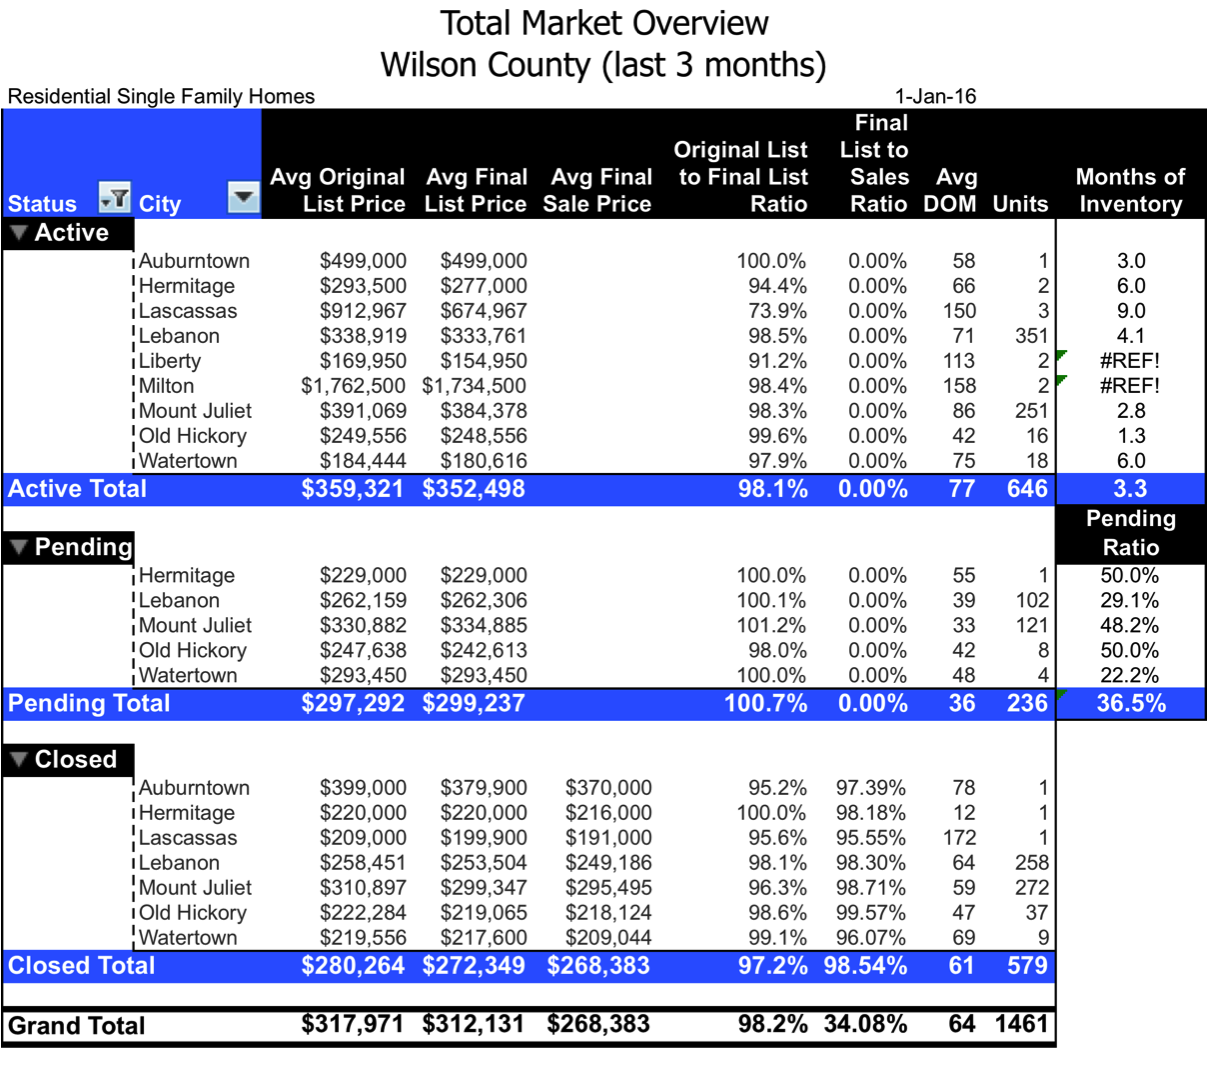 Wilcon county real estate market research for 2015 by City